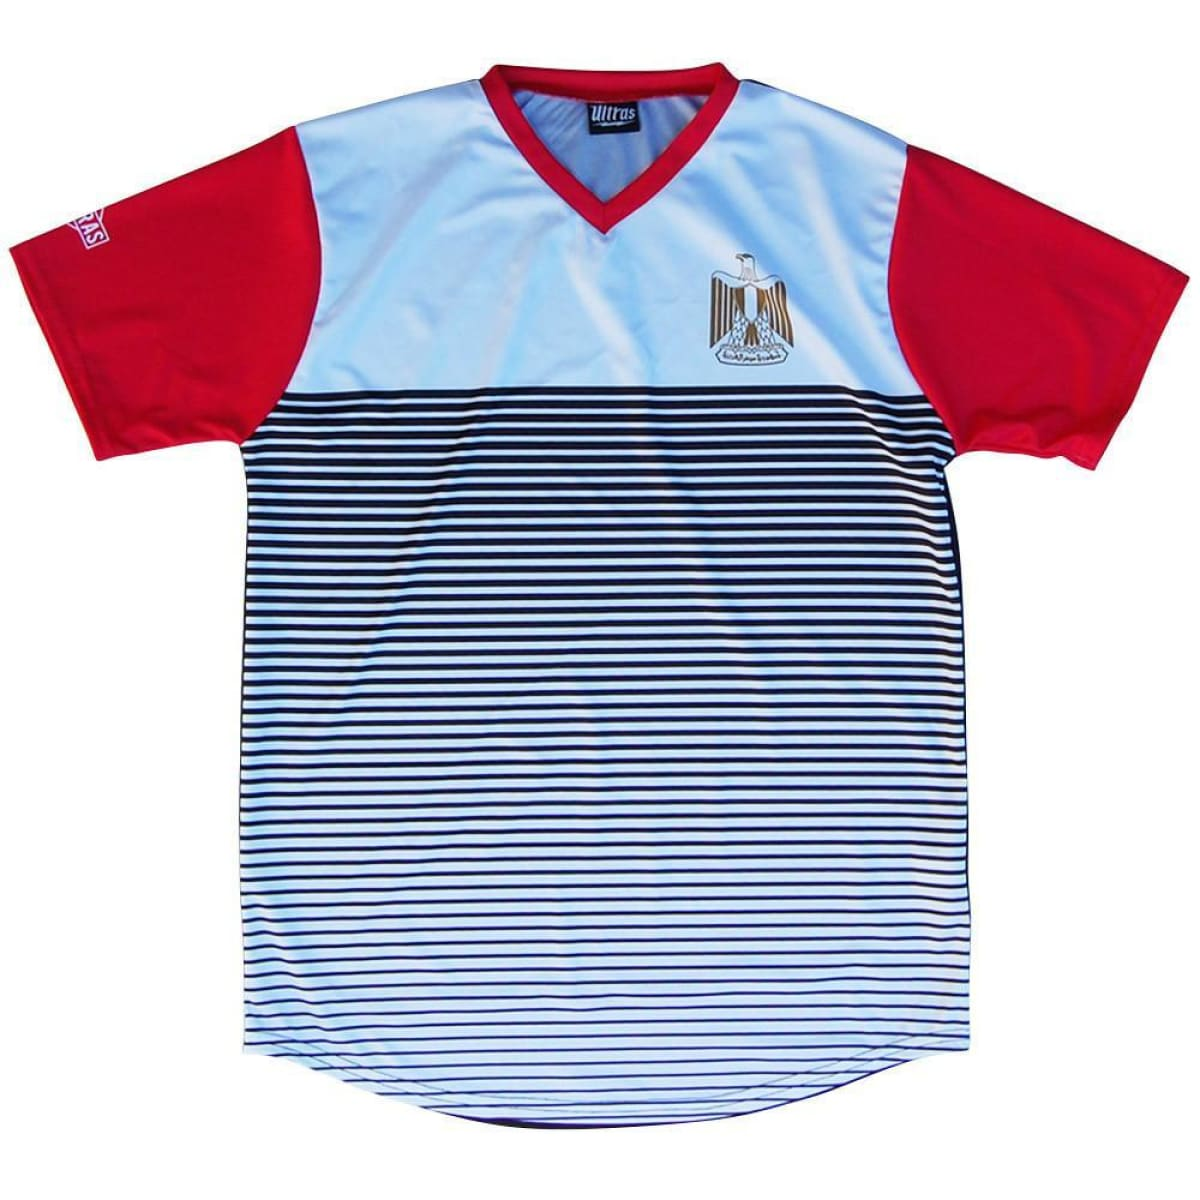 Egypt Rise Soccer Jersey - White / Toddler 1 / No - Ultras Country Soccer Jerseys